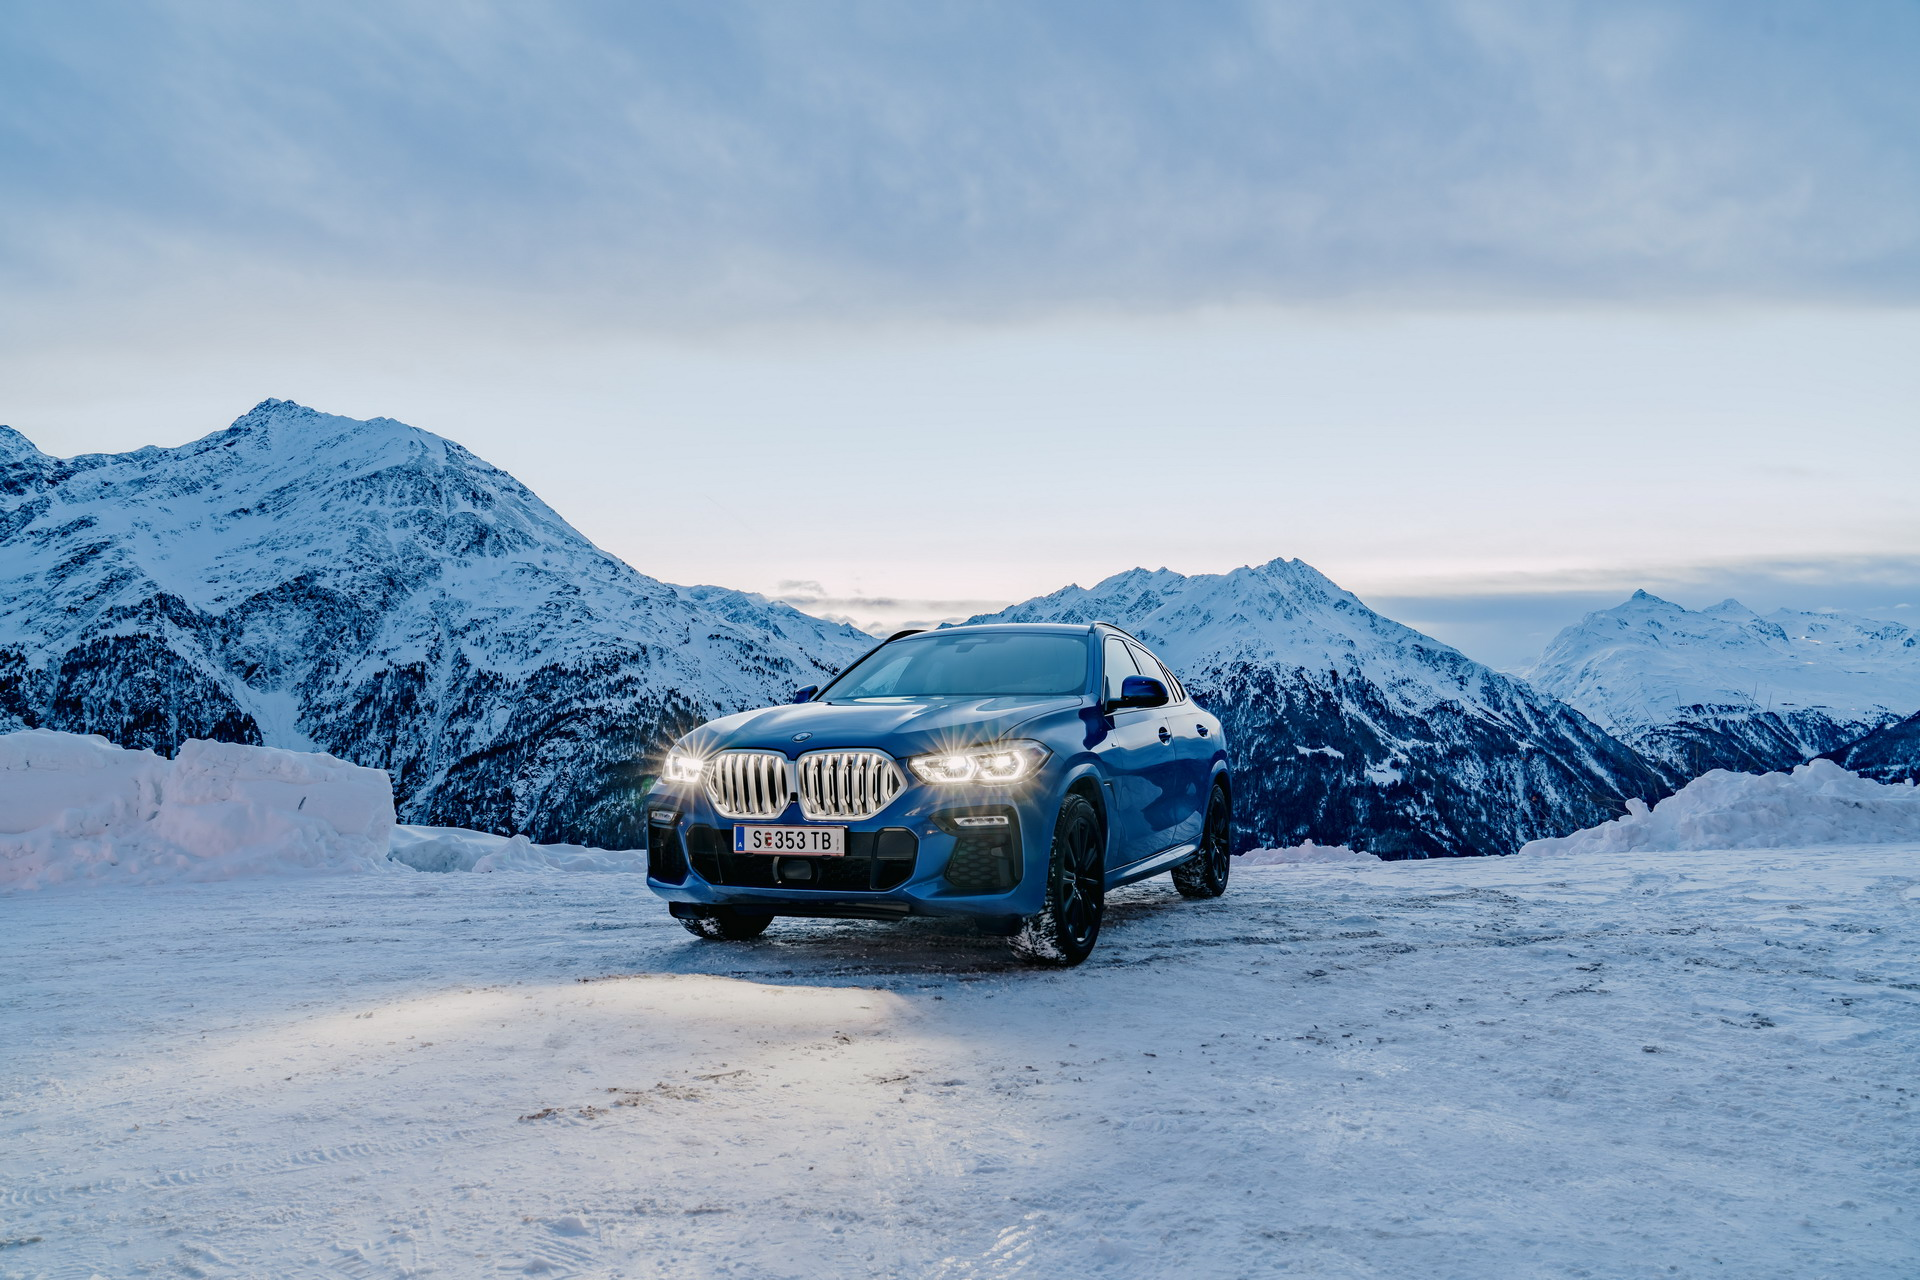 The new X6 and 8 Series Gran Coupe in Solden 27